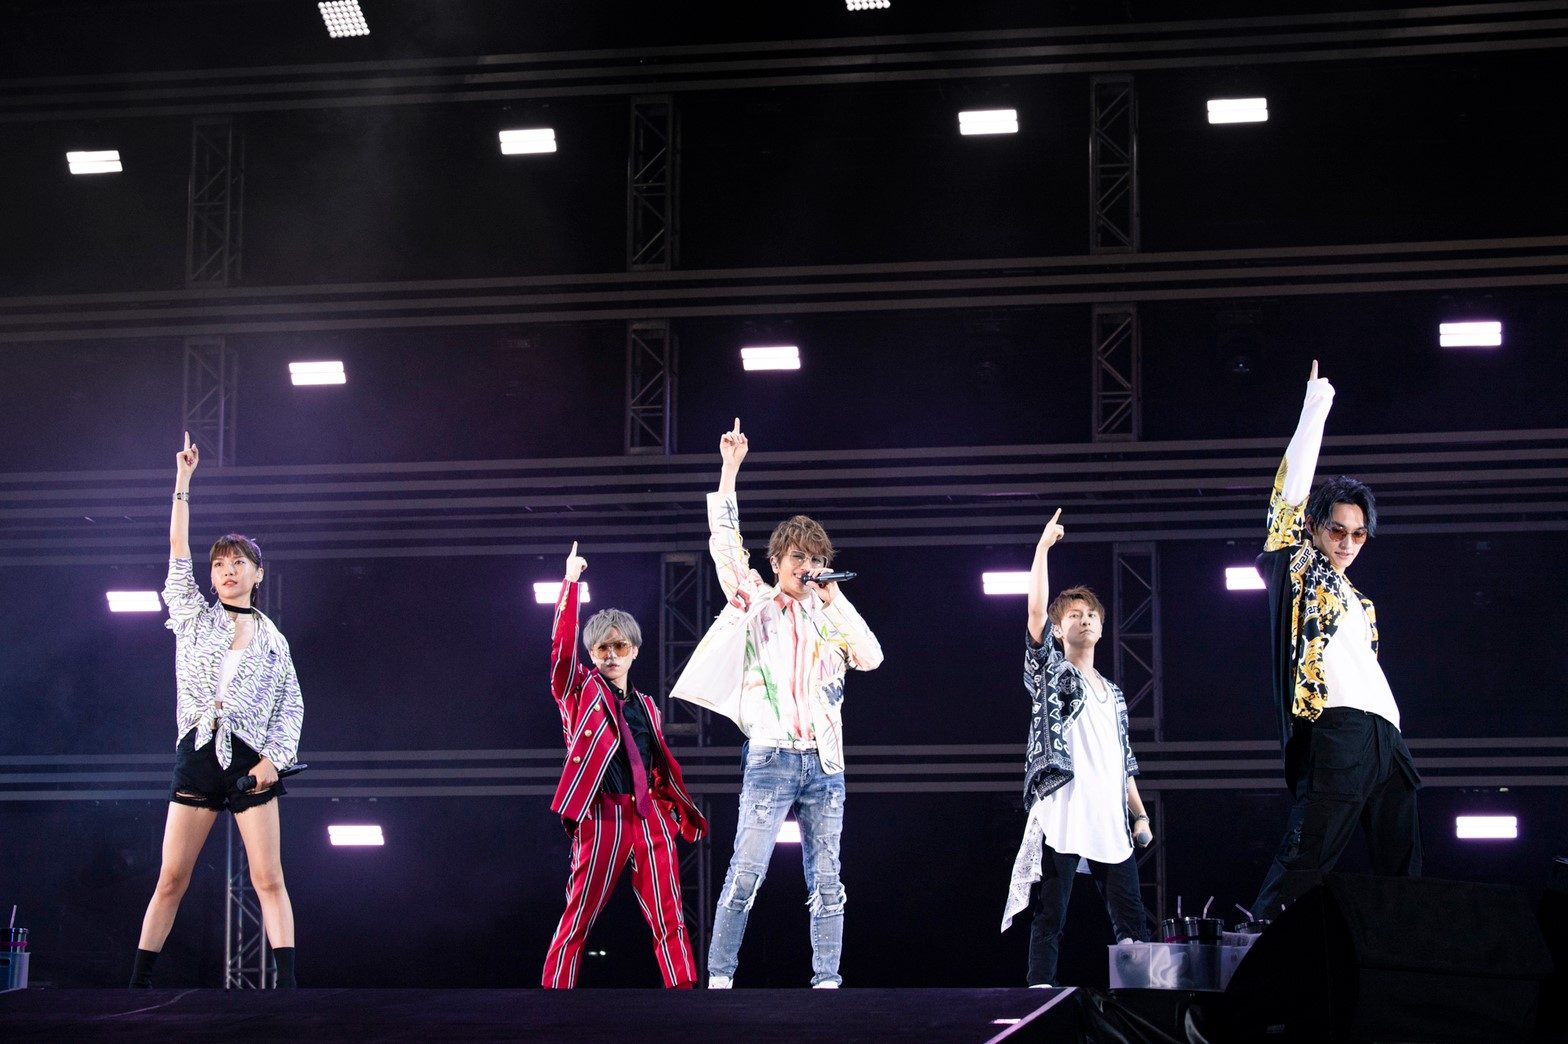 「a-nation 2019」のAAA